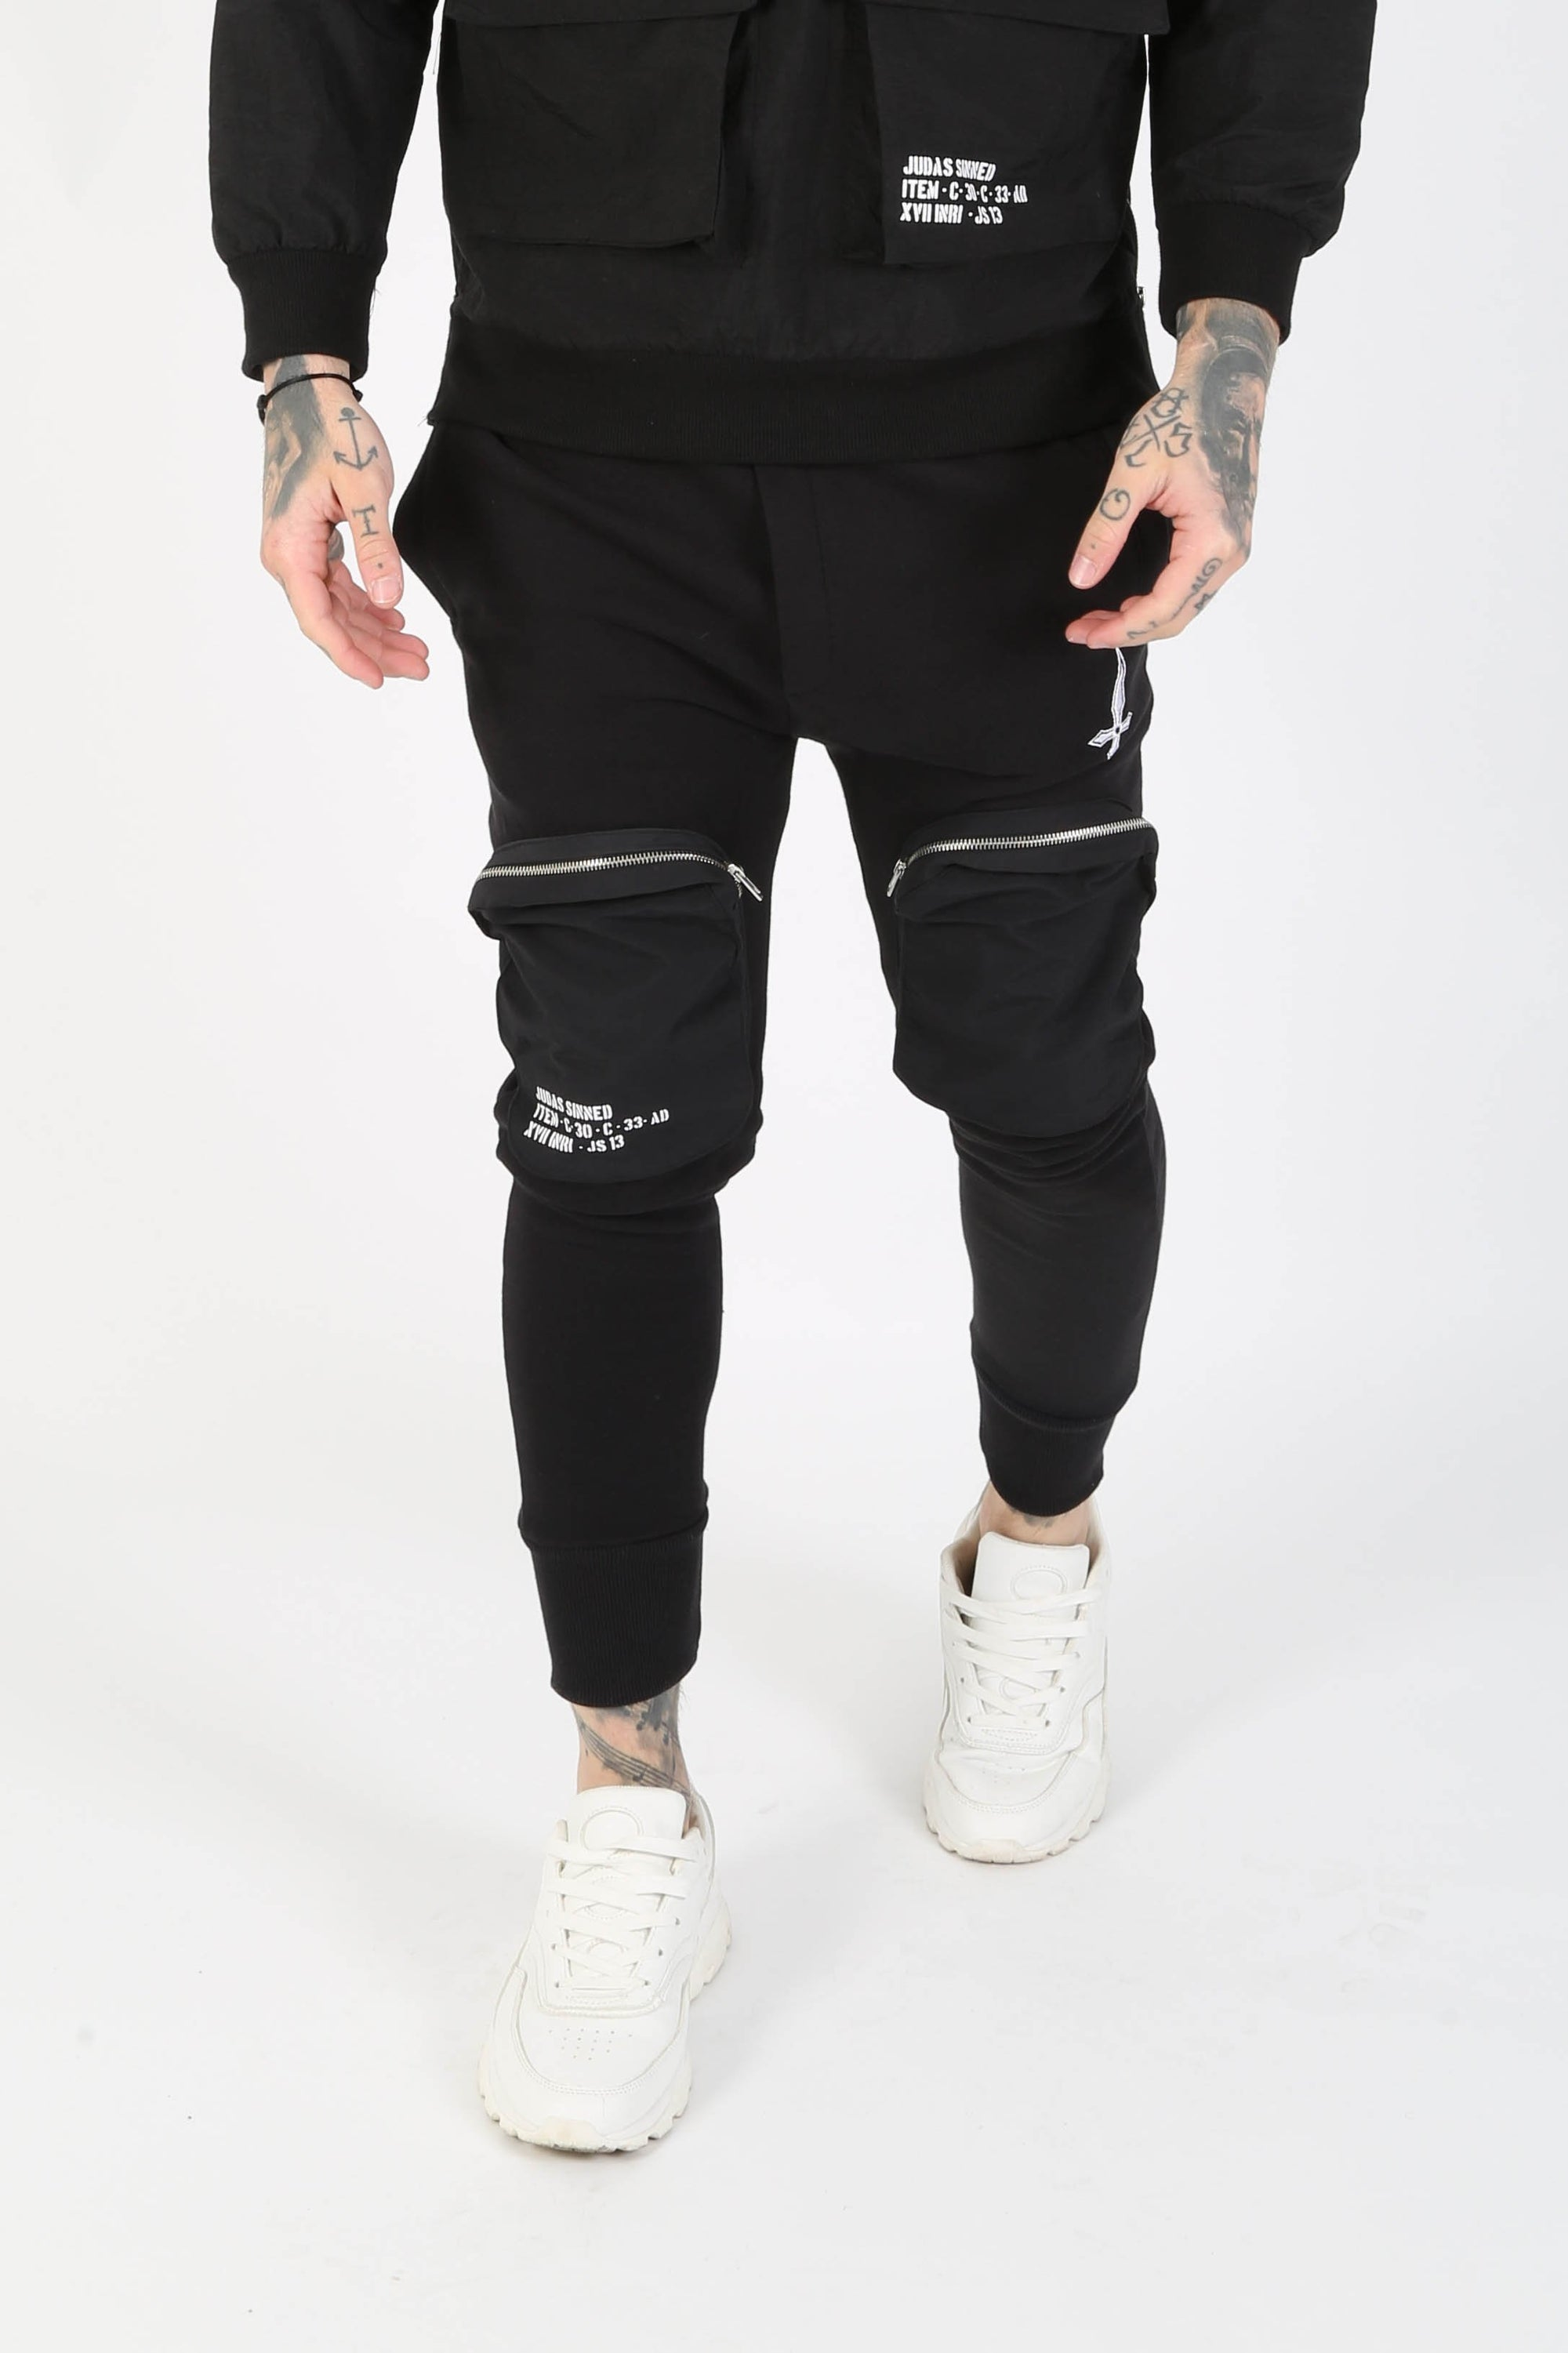 Judas Sinned Swindn Pocket Detail Men's Joggers - Black - Judas Sinned Clothing